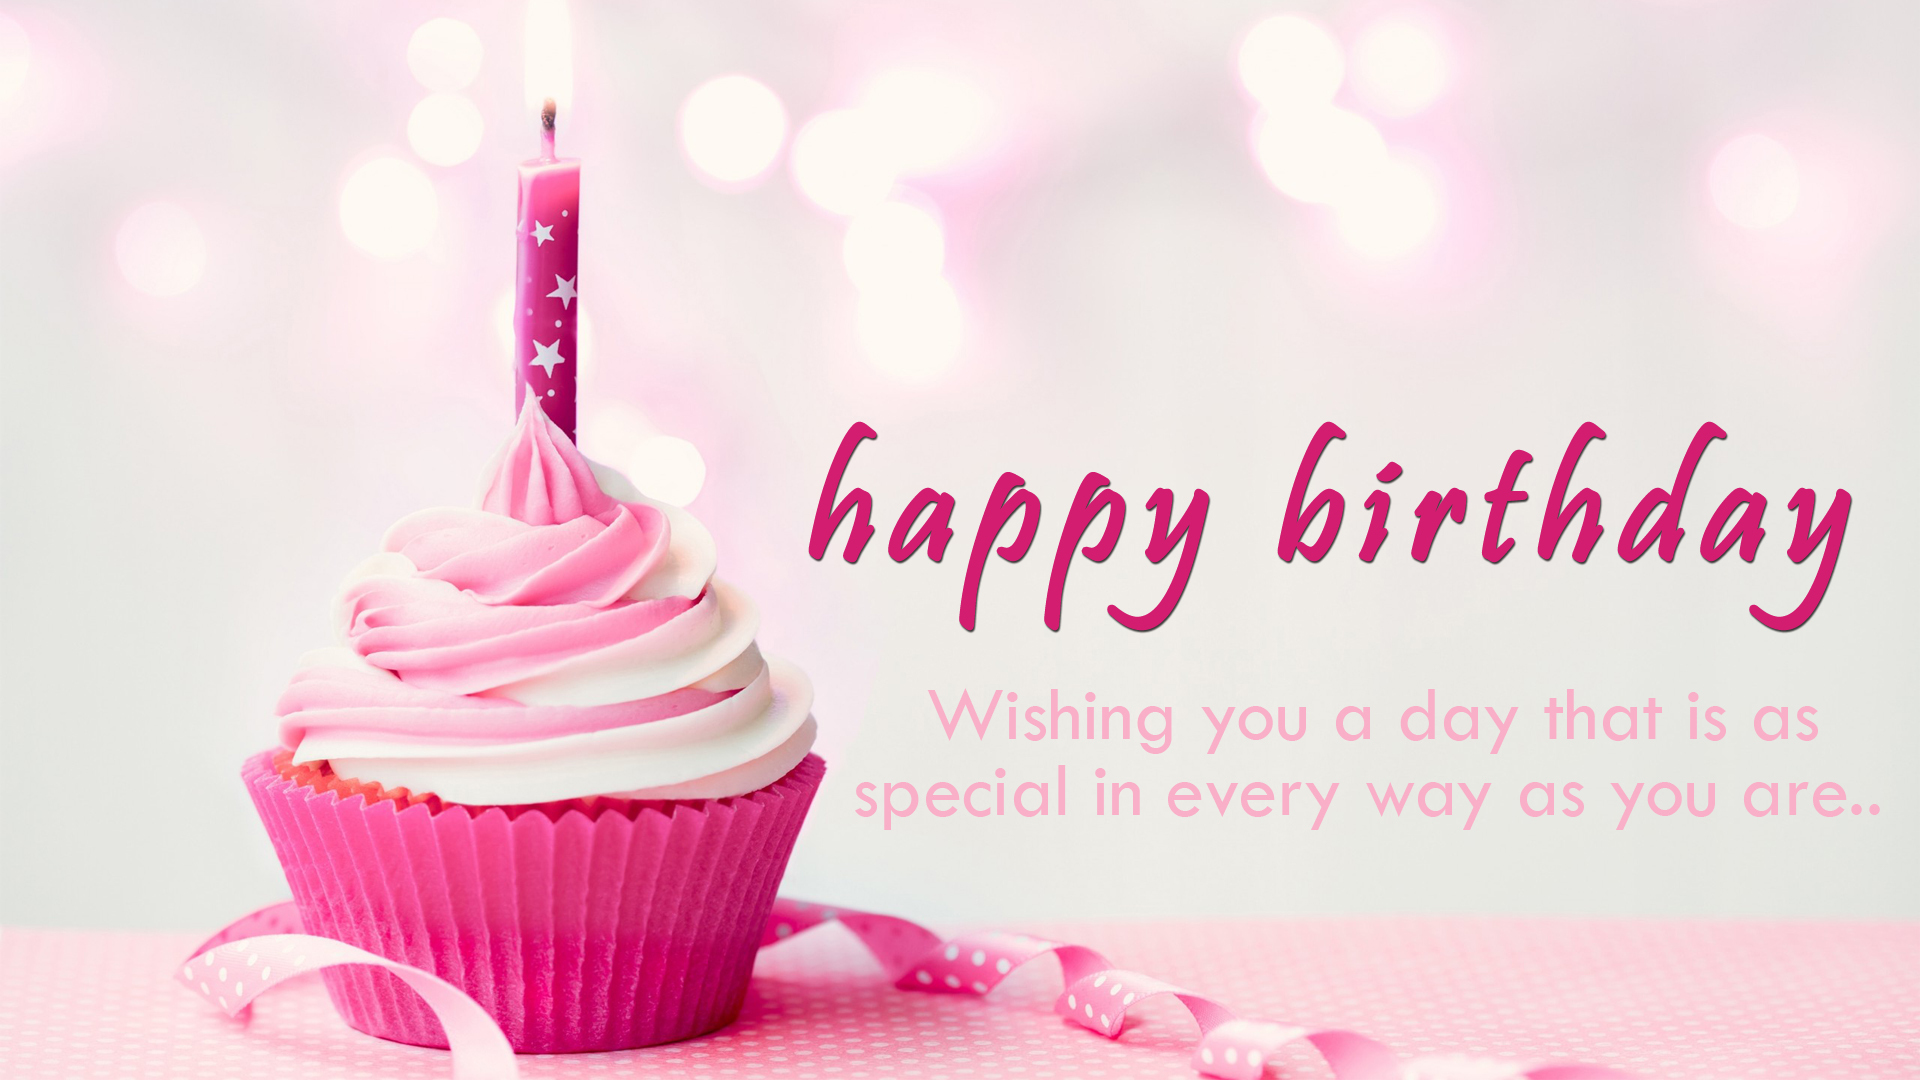 Happy birthday wishes greeting hd wallpapers background - Happy birthday card wallpaper ...